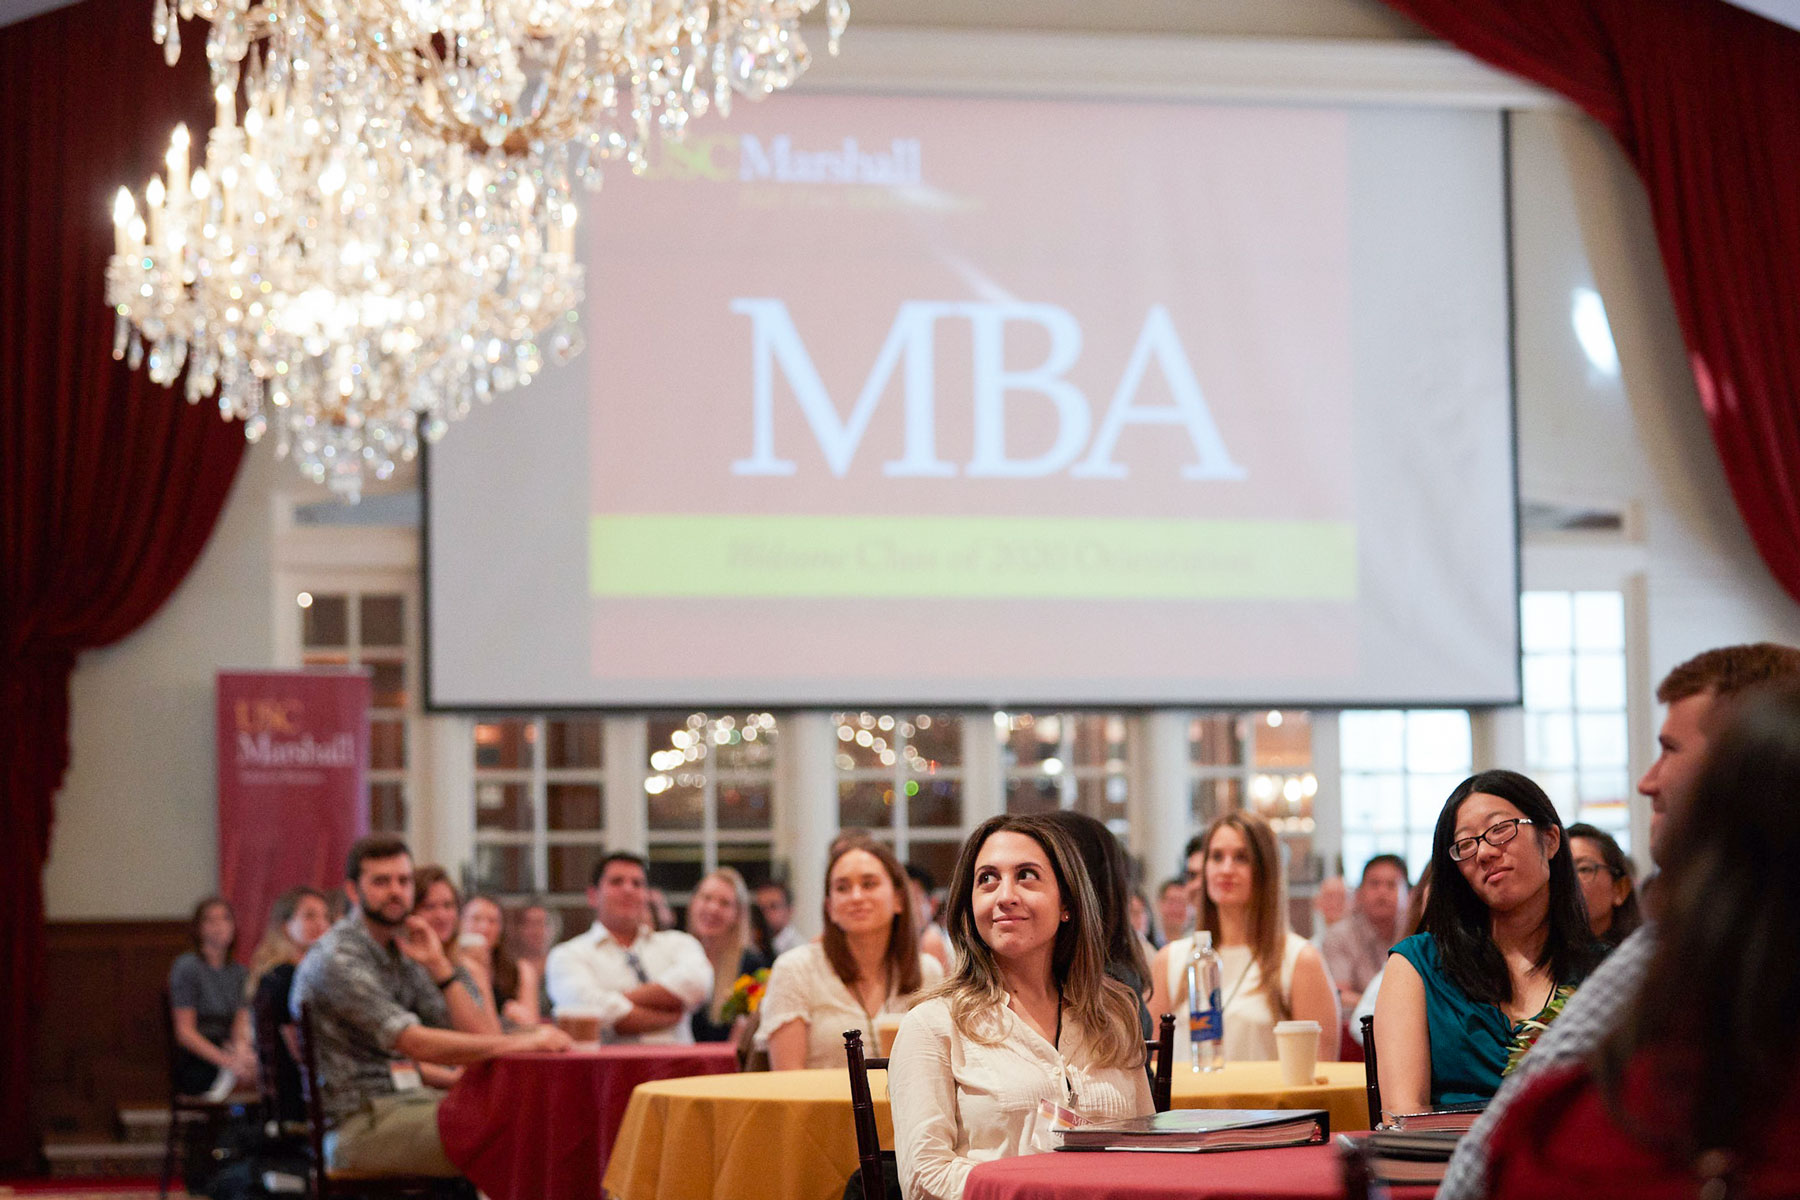 Women in business: MBA orientation